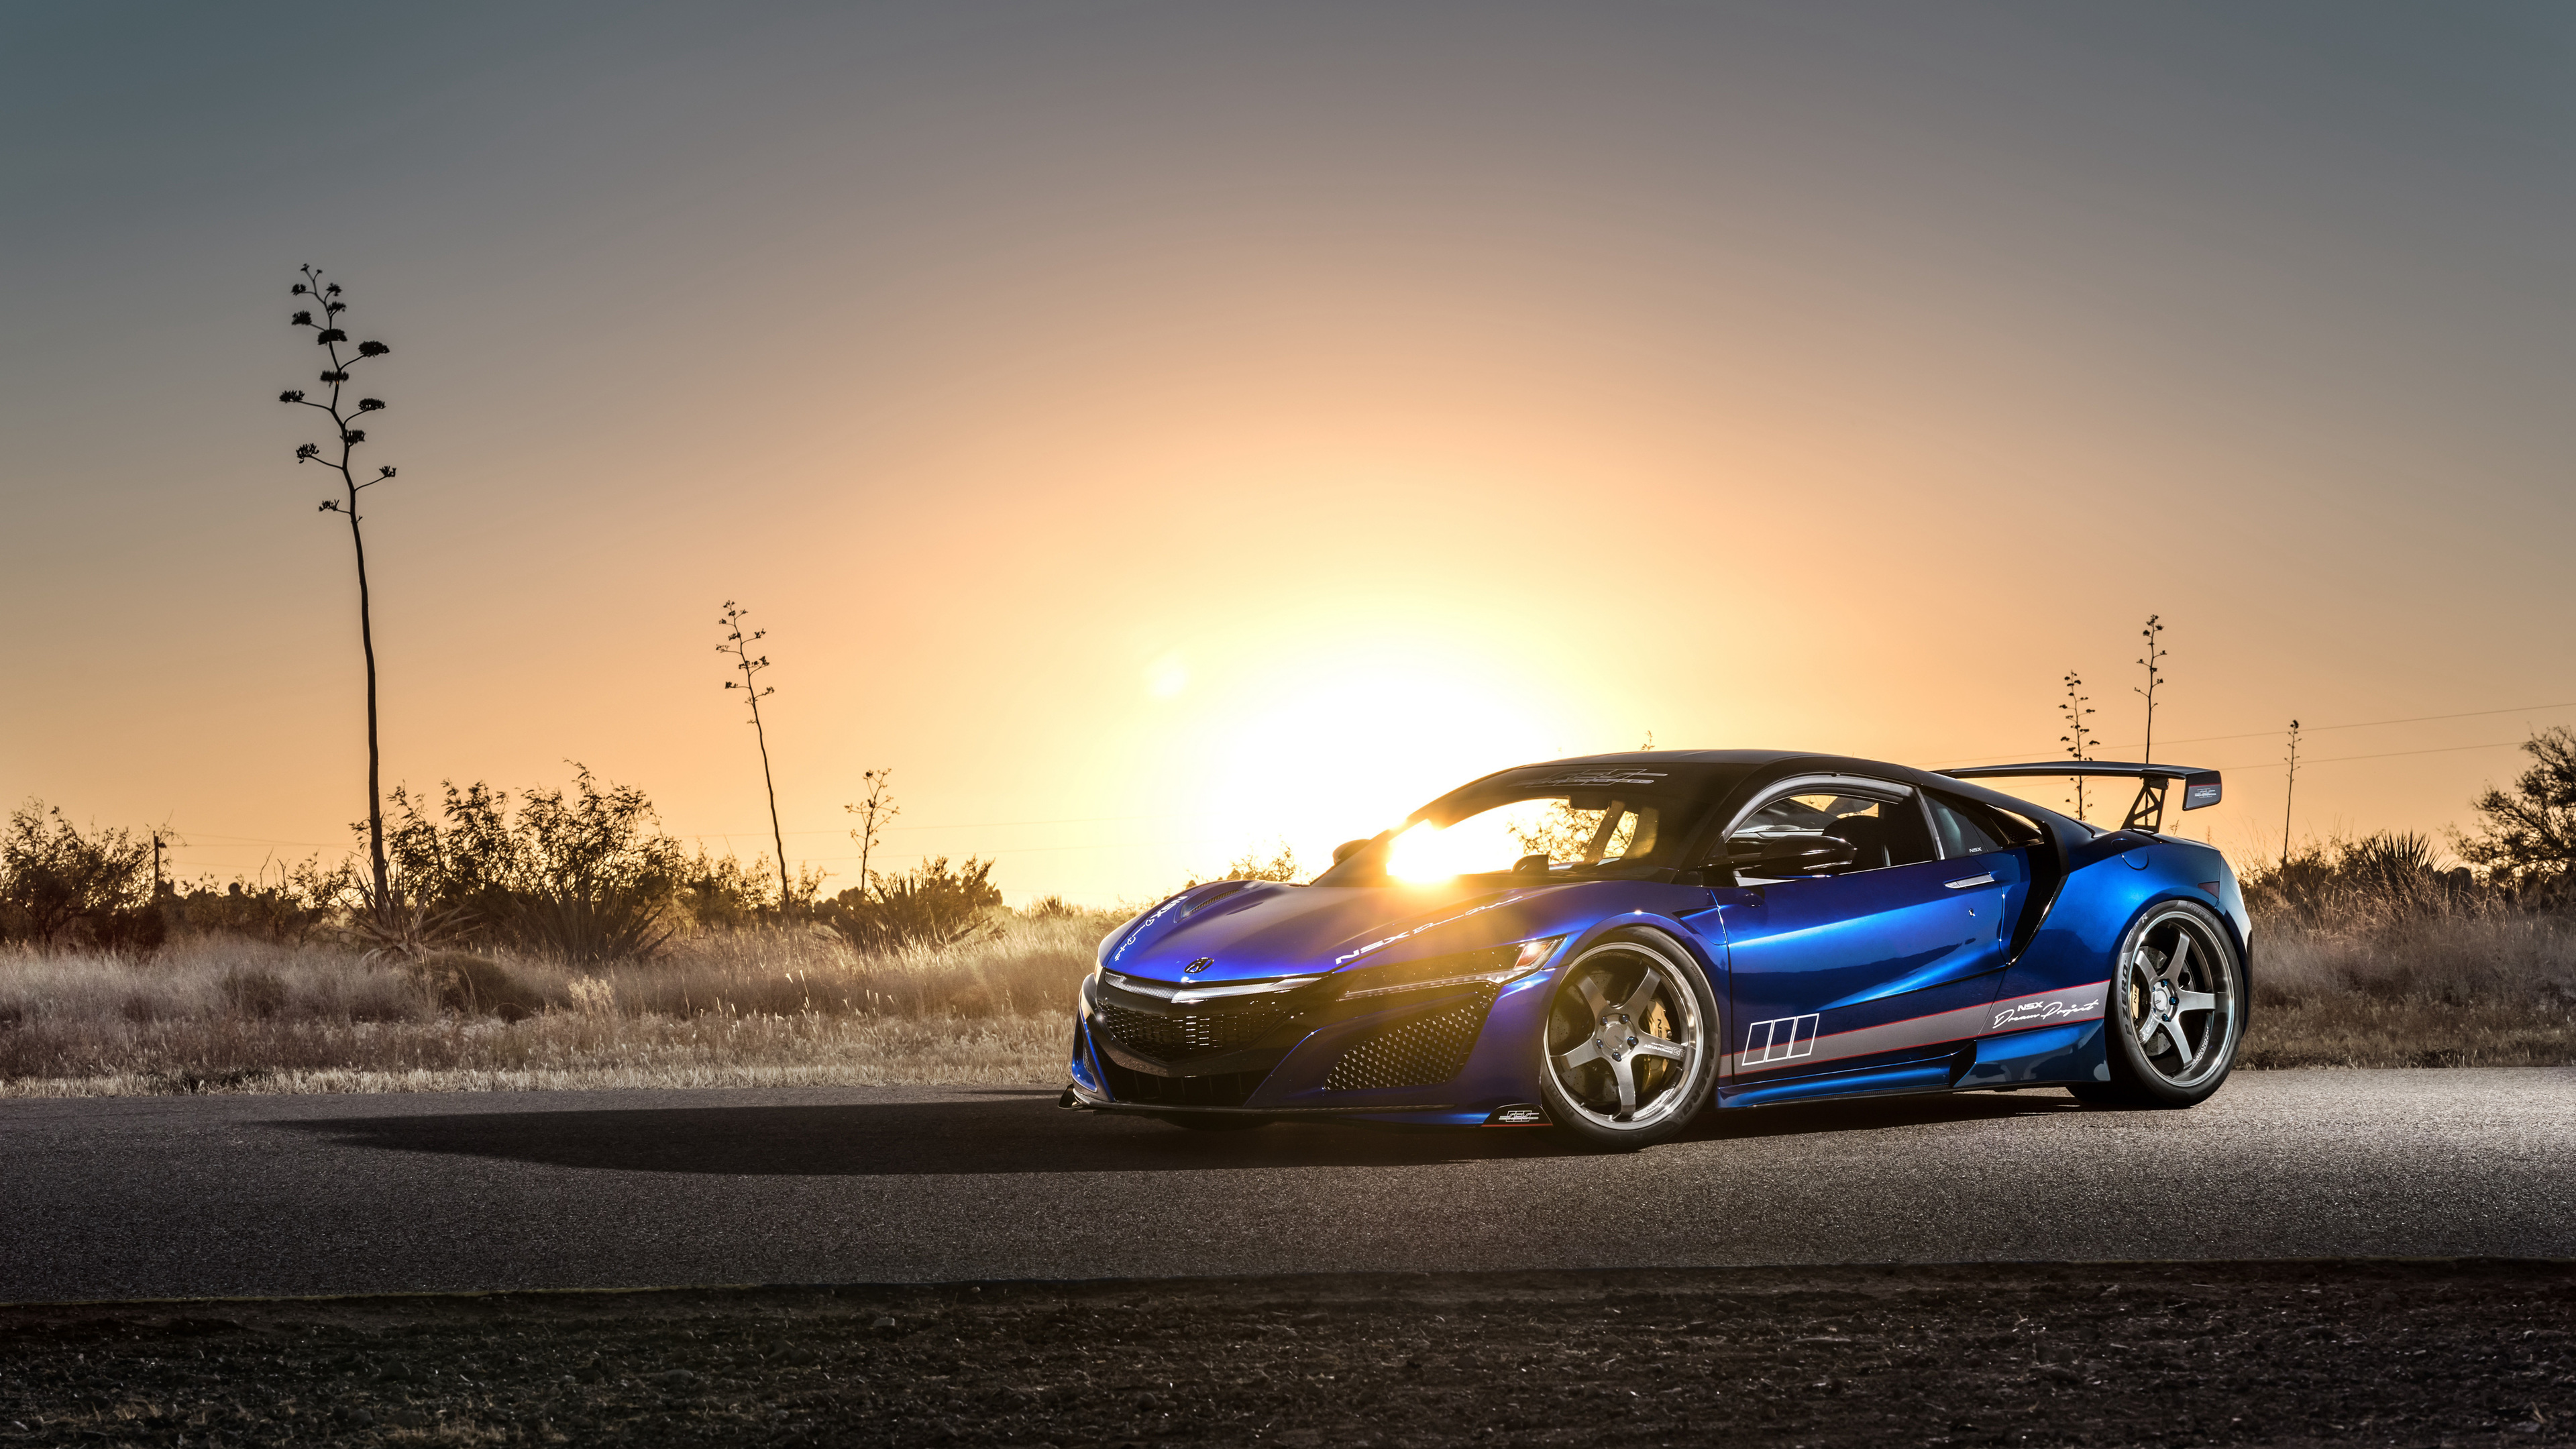 acura nsx scienceofspeed dream project 4k 1539107580 - Acura NSX Scienceofspeed Dream Project 4k - hd-wallpapers, cars wallpapers, acura wallpapers, acura nsx wallpapers, 4k-wallpapers, 2017 cars wallpapers